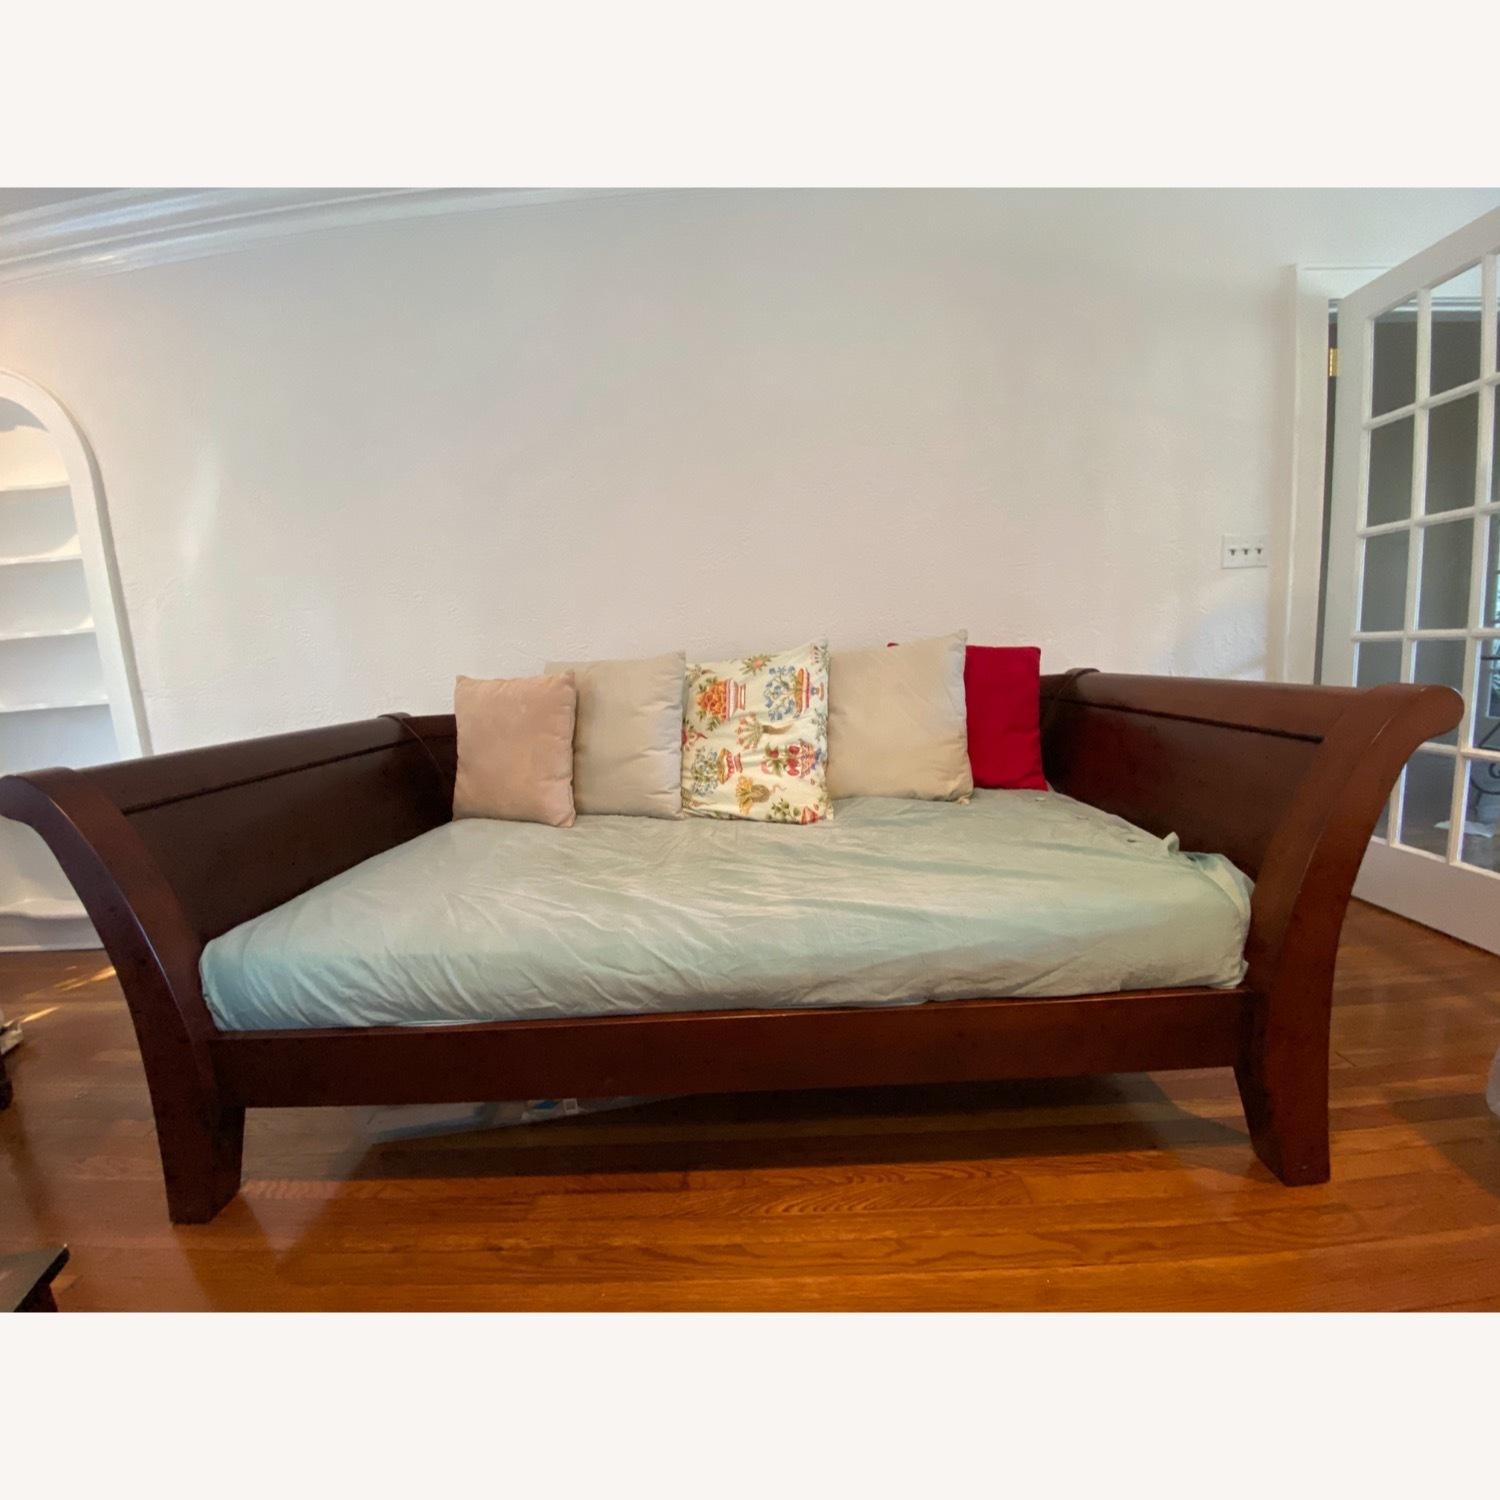 Impeccable Condition Sleigh Day bed - image-2